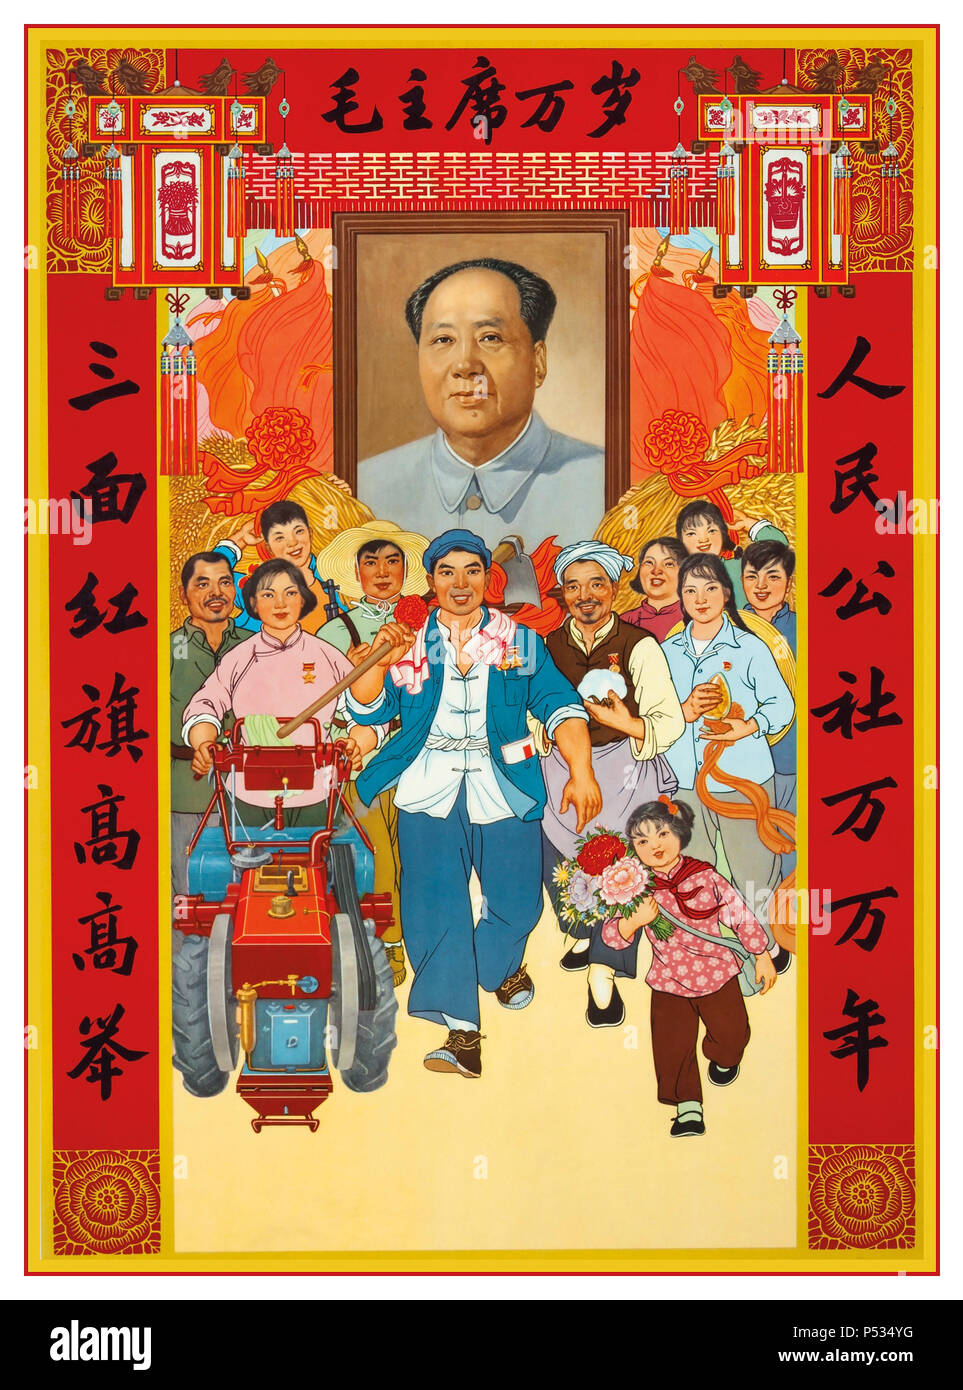 Vintage Chairman Mao Chinese Communist Propaganda Poster Great Teacher Great Leader Great Commander 1960's idealistic communist propaganda poster promoting Mao as leader of communist China - Stock Image